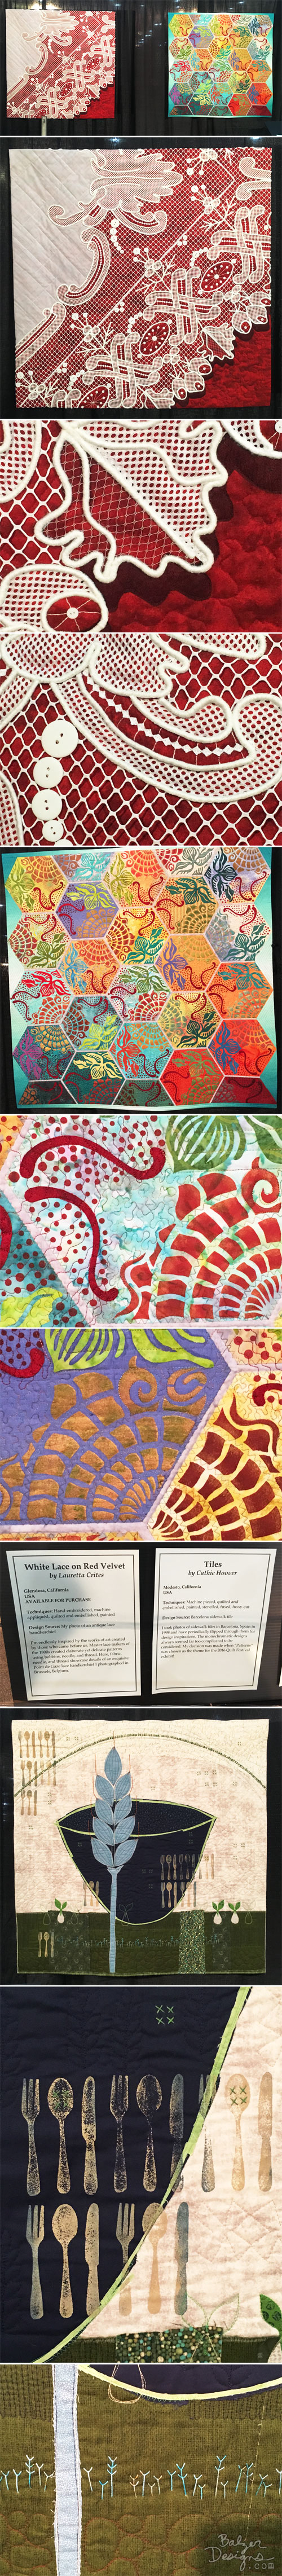 From the Balzer Designs Blog: Quilt Festival 2016: Part One #quilting